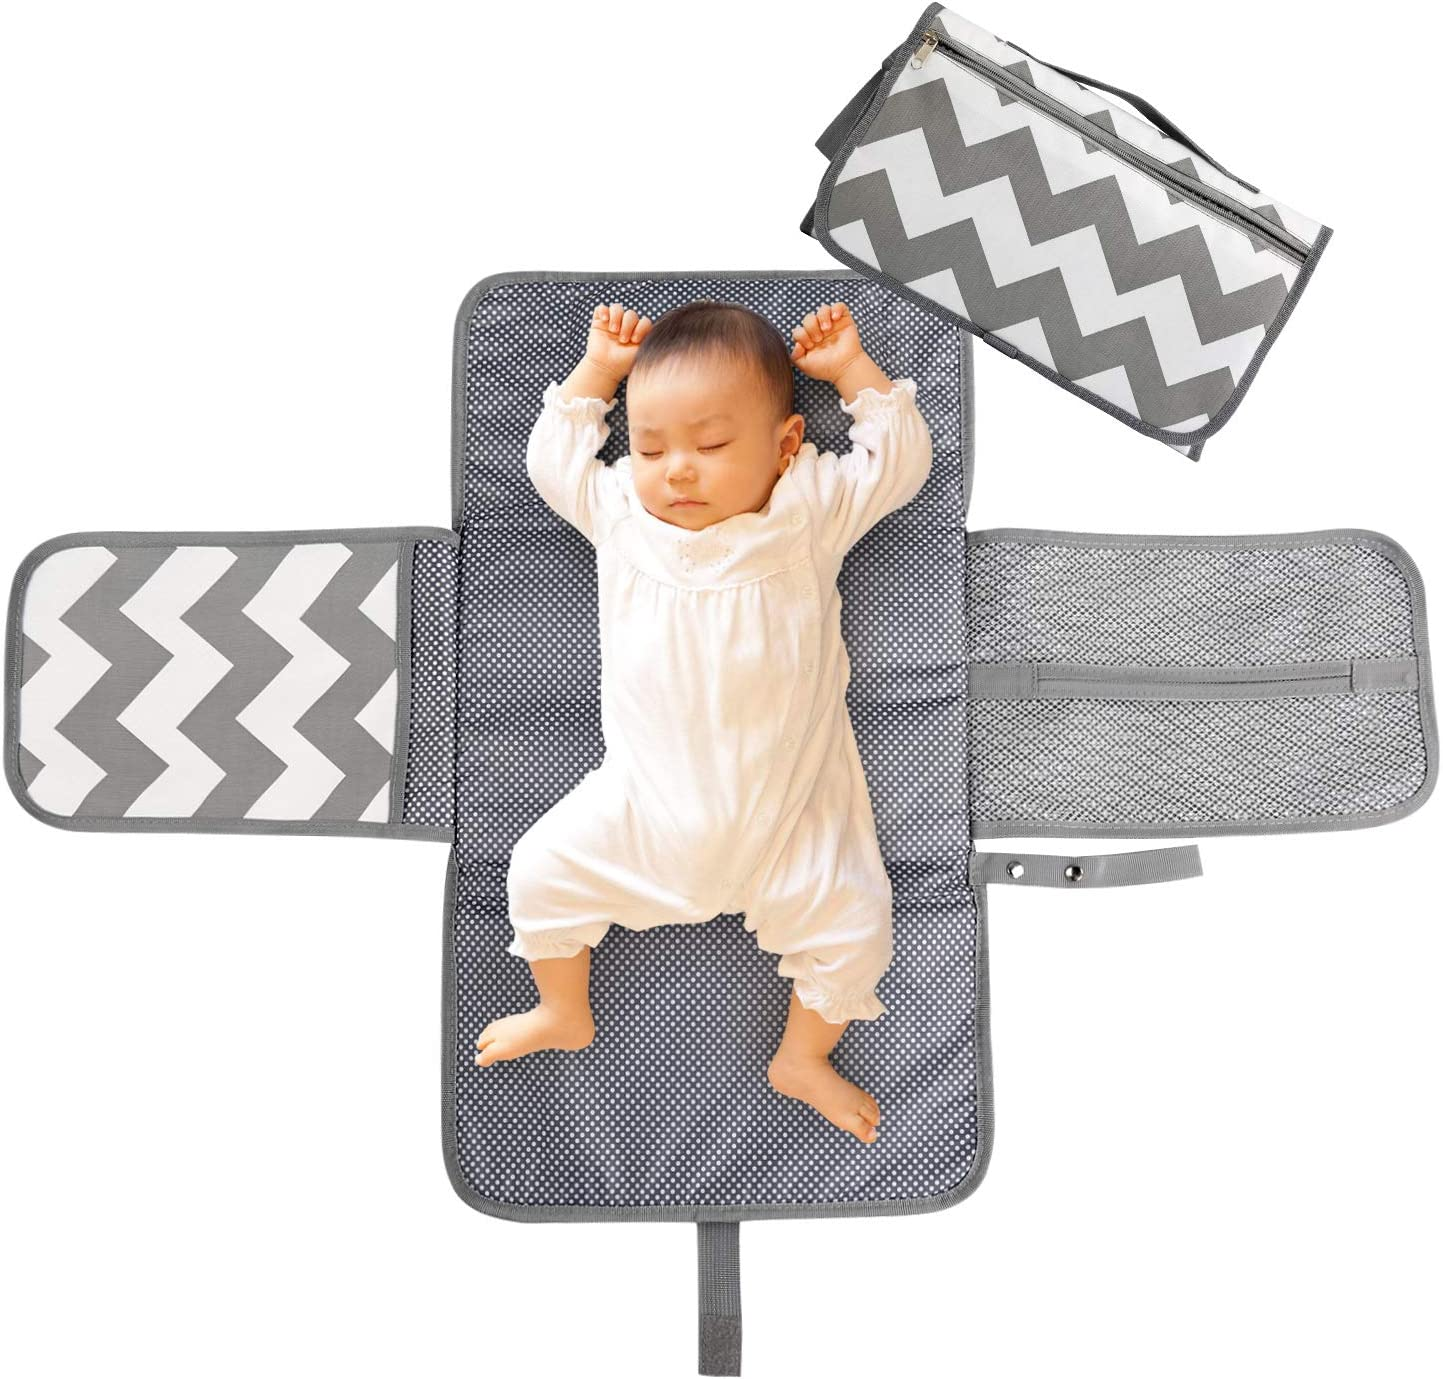 LEADSTAR Portable Nappy Changing Mat, Diaper Changing Pad with Head Cushion Pockets, Waterproof Foldable Infant Baby Changing Pad Kit for Home Travel Outside